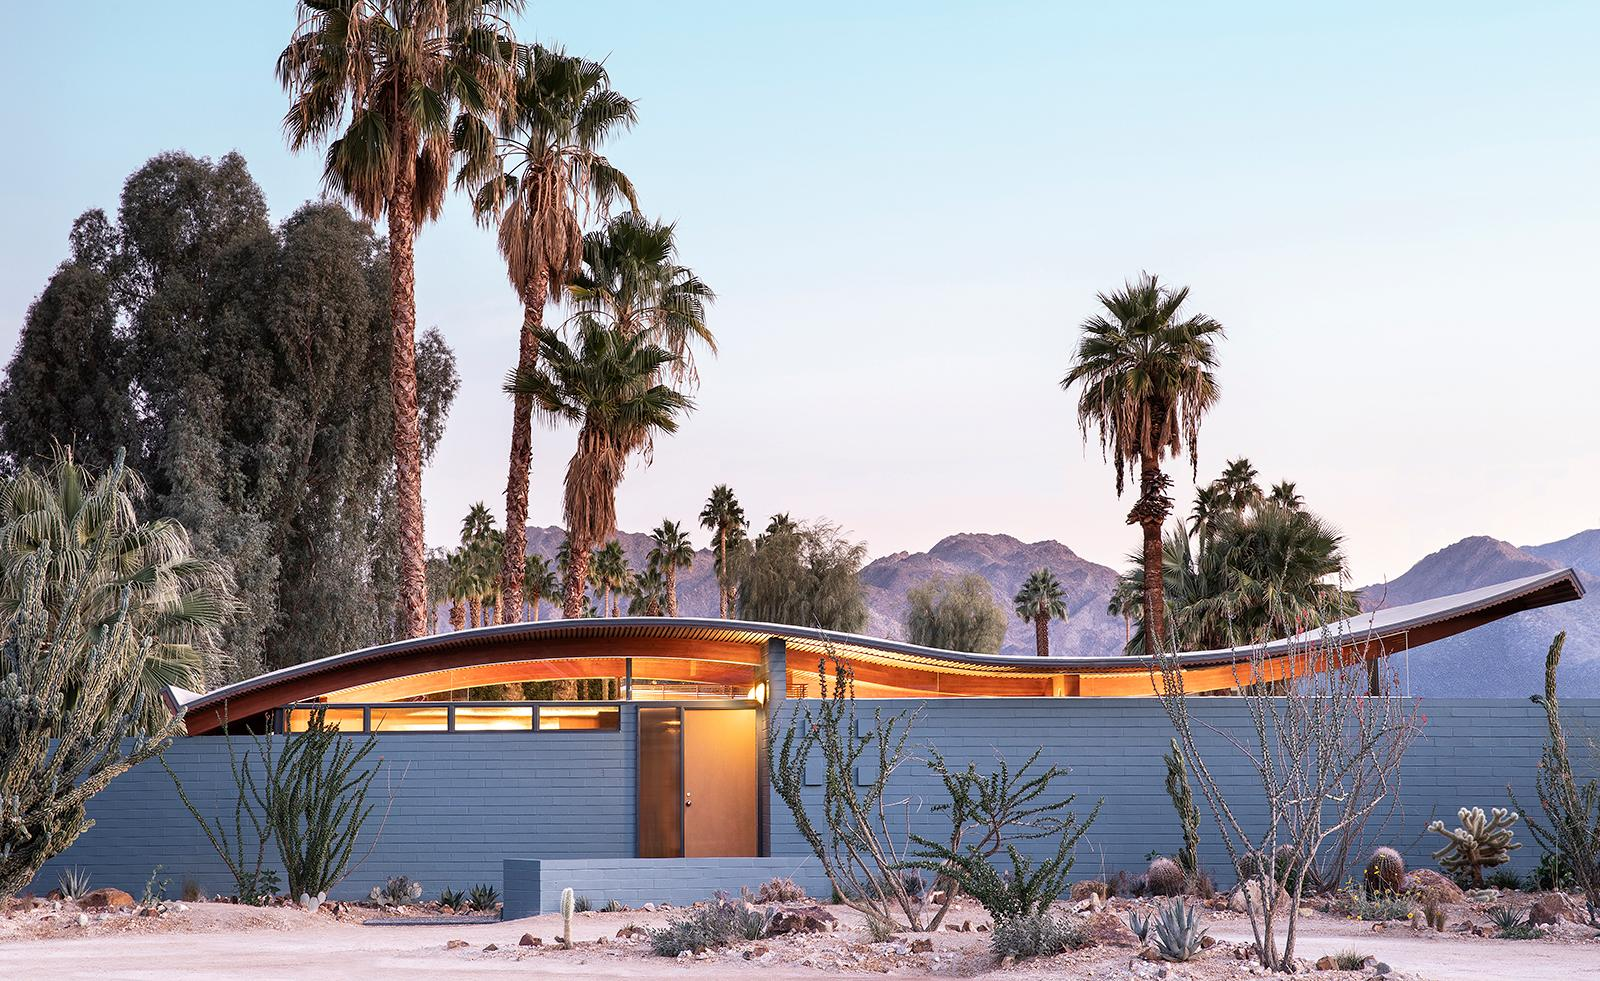 Three Nights at Walter S. White's Miles C. Bates (Wave) House in Palm Springs